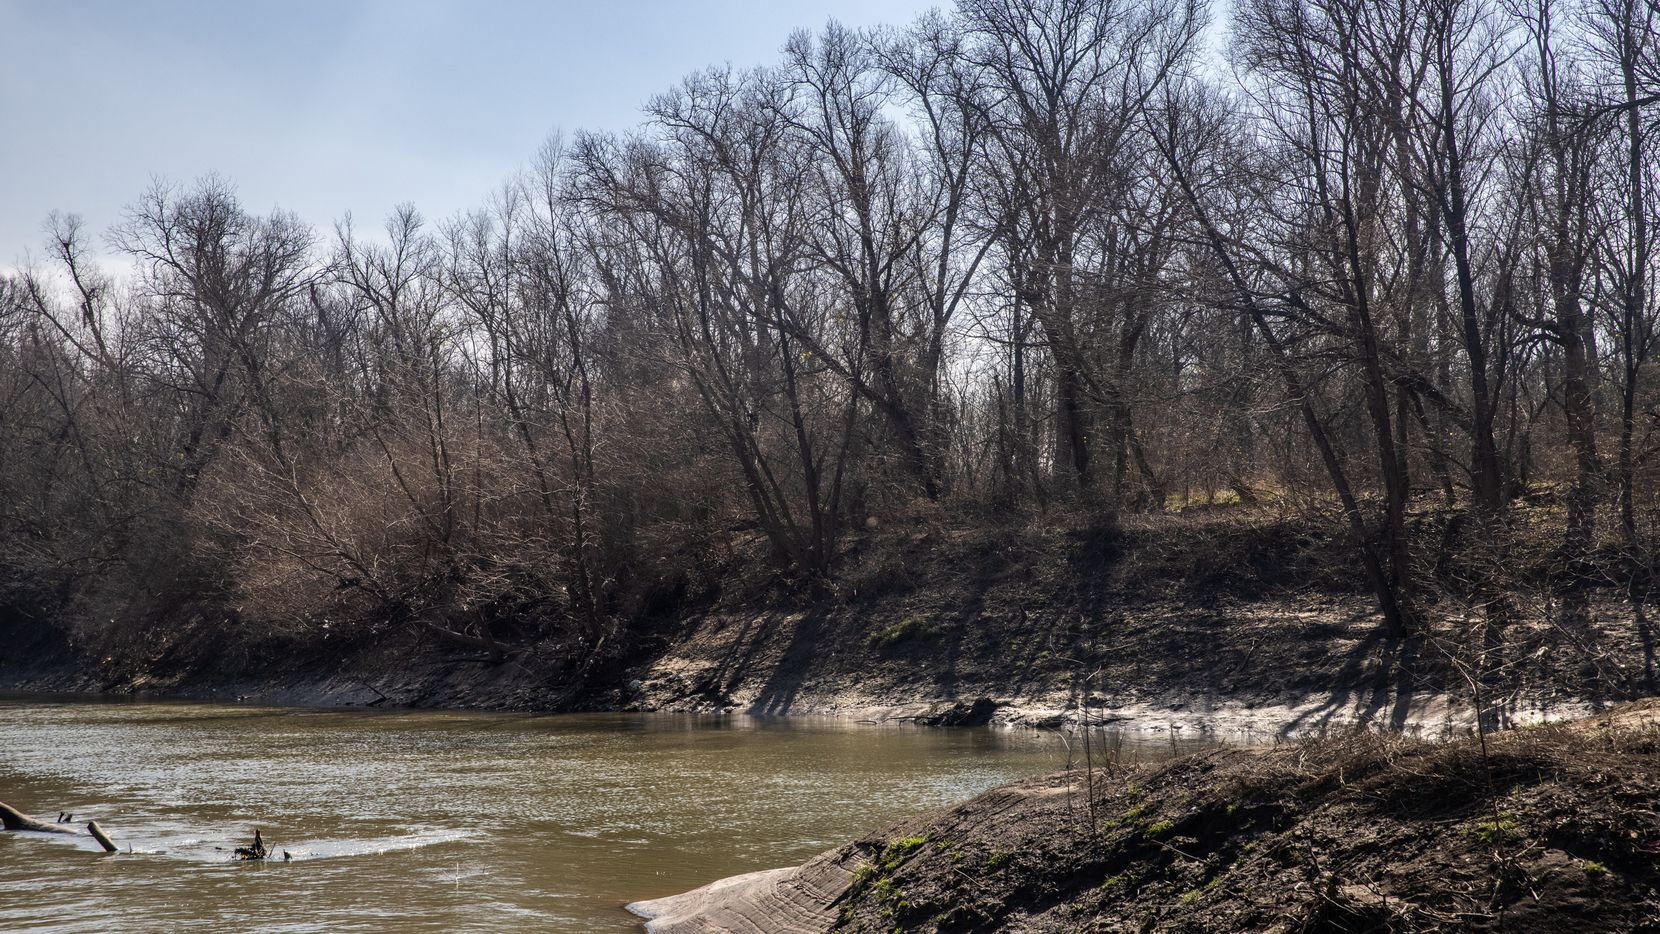 Dormant ash and willow trees line the banks where White Rock Creek meets the Trinity River in the epicenter of the Great Trinity Forest.